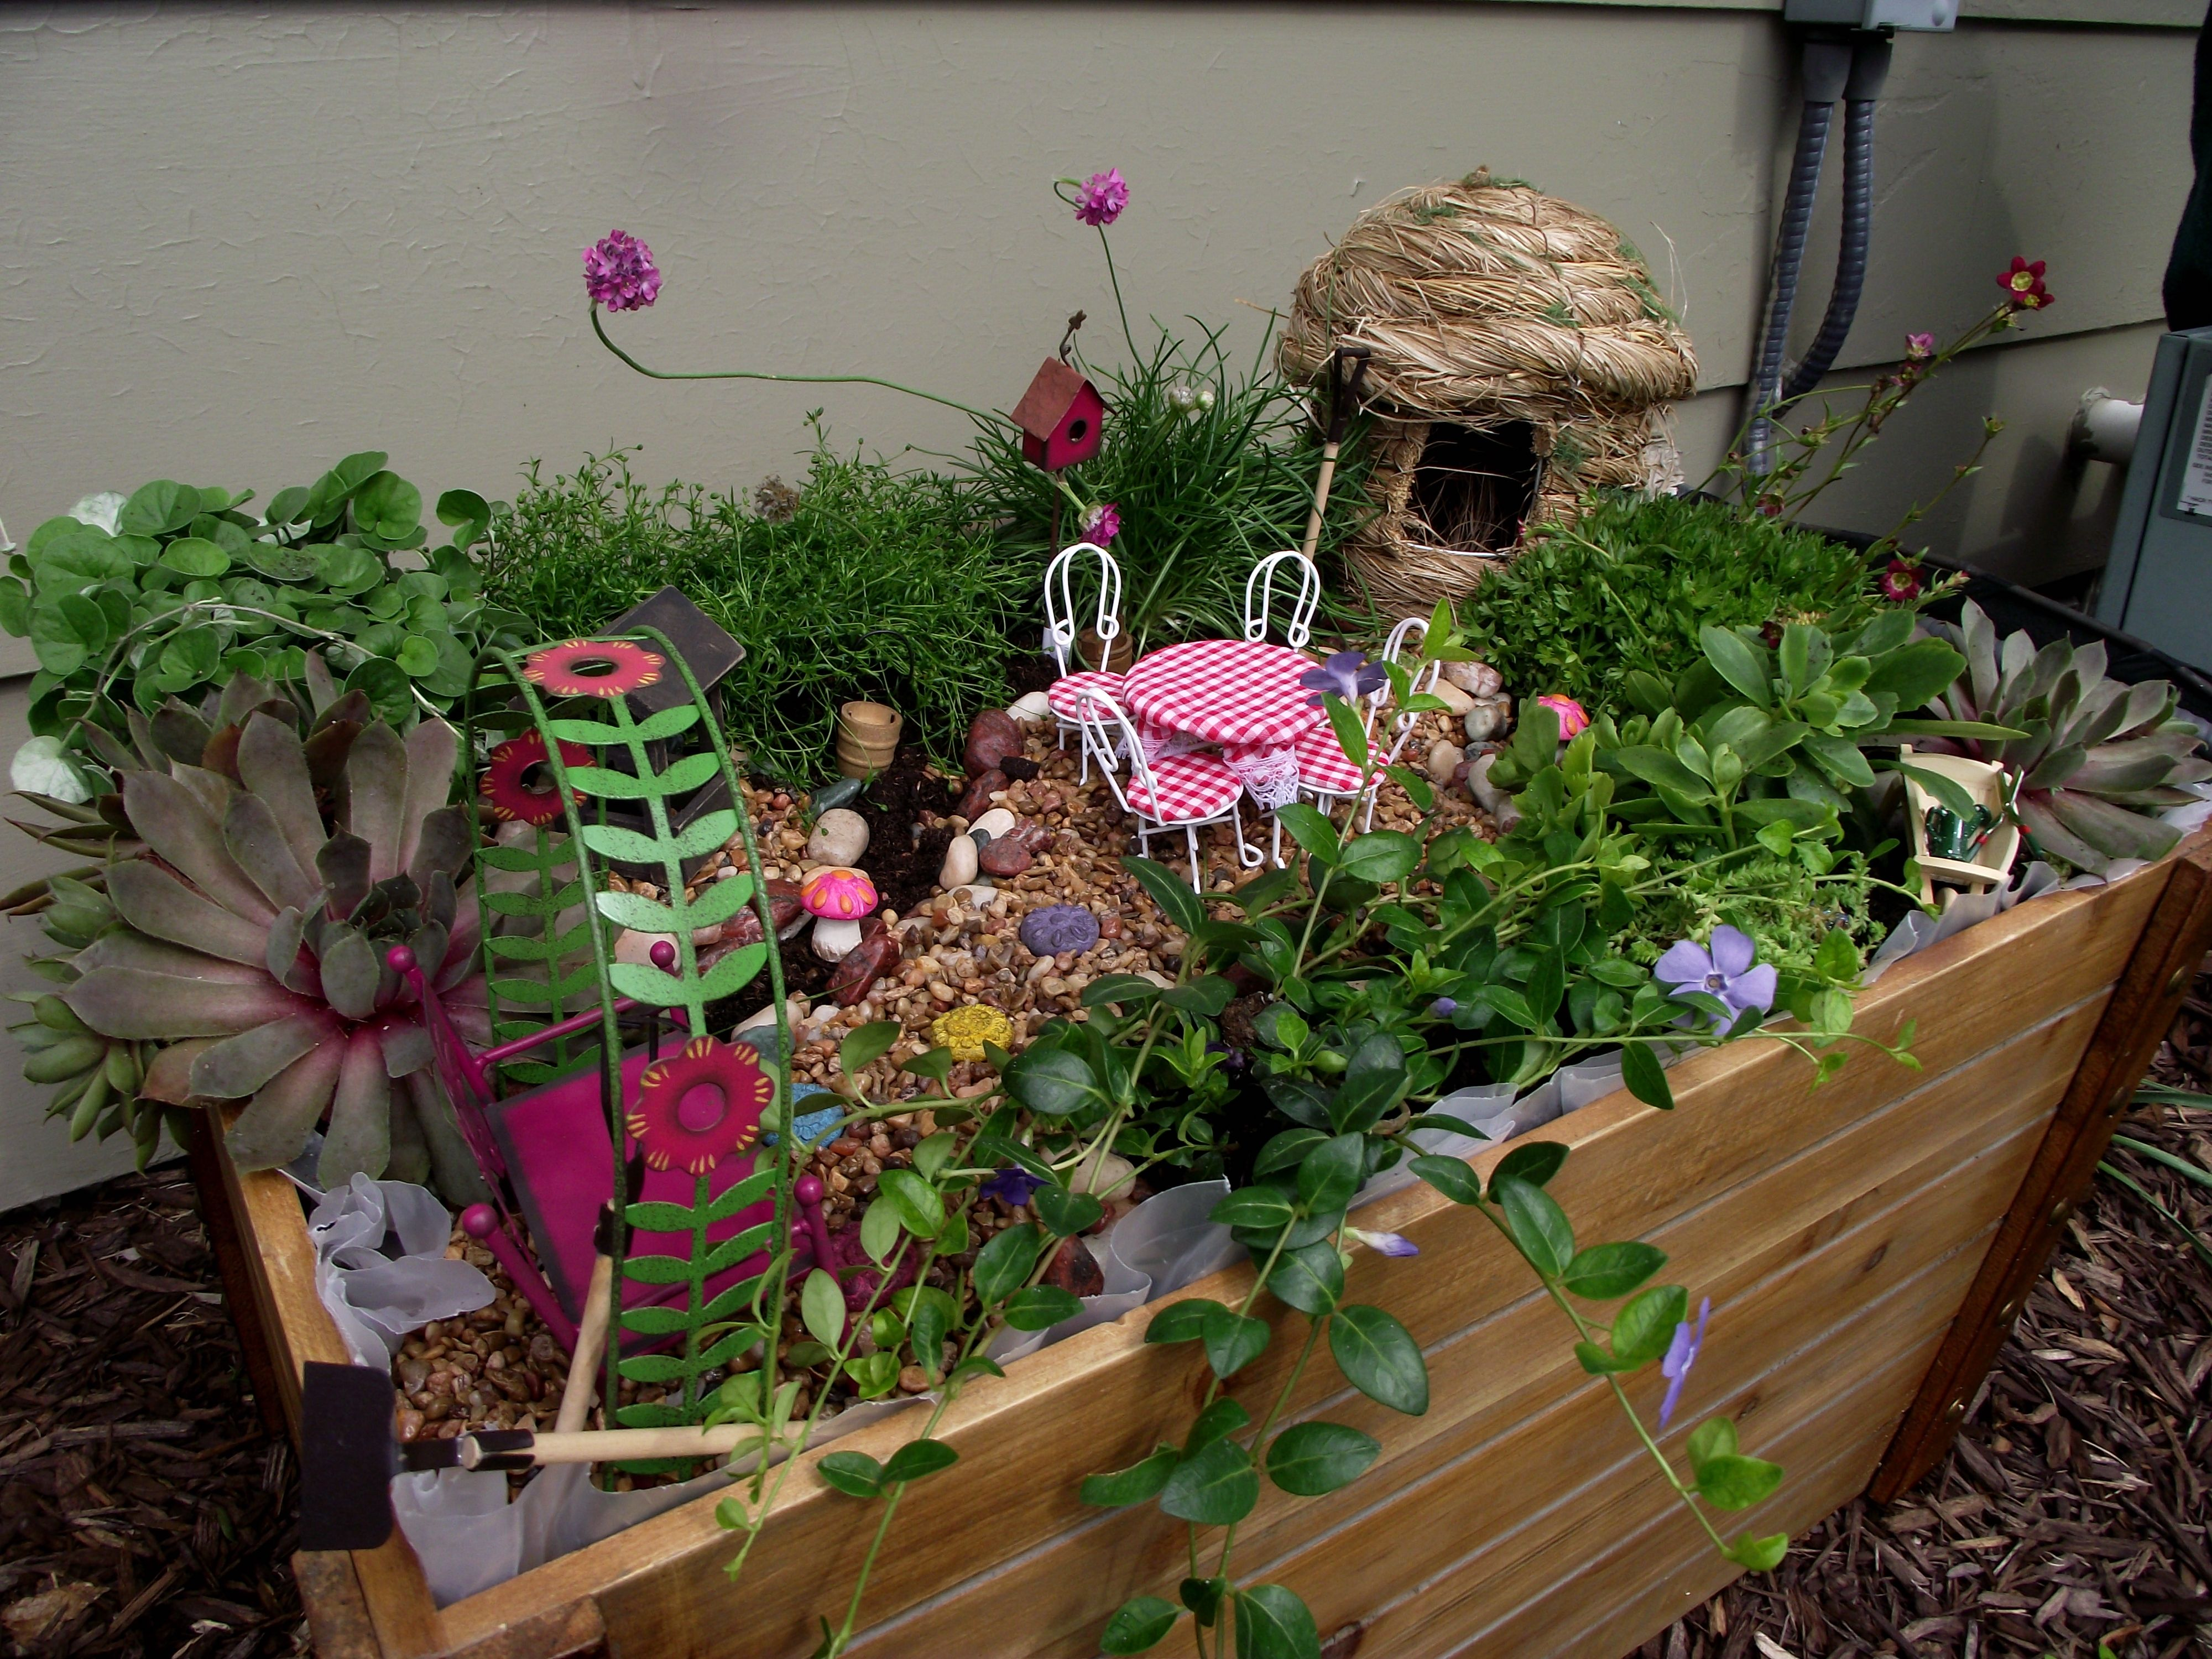 Shirley Bovshows Fairy Gardens Hallmark Channel Fairy Garden Supplies Ebay Top 25 1000 Ideas